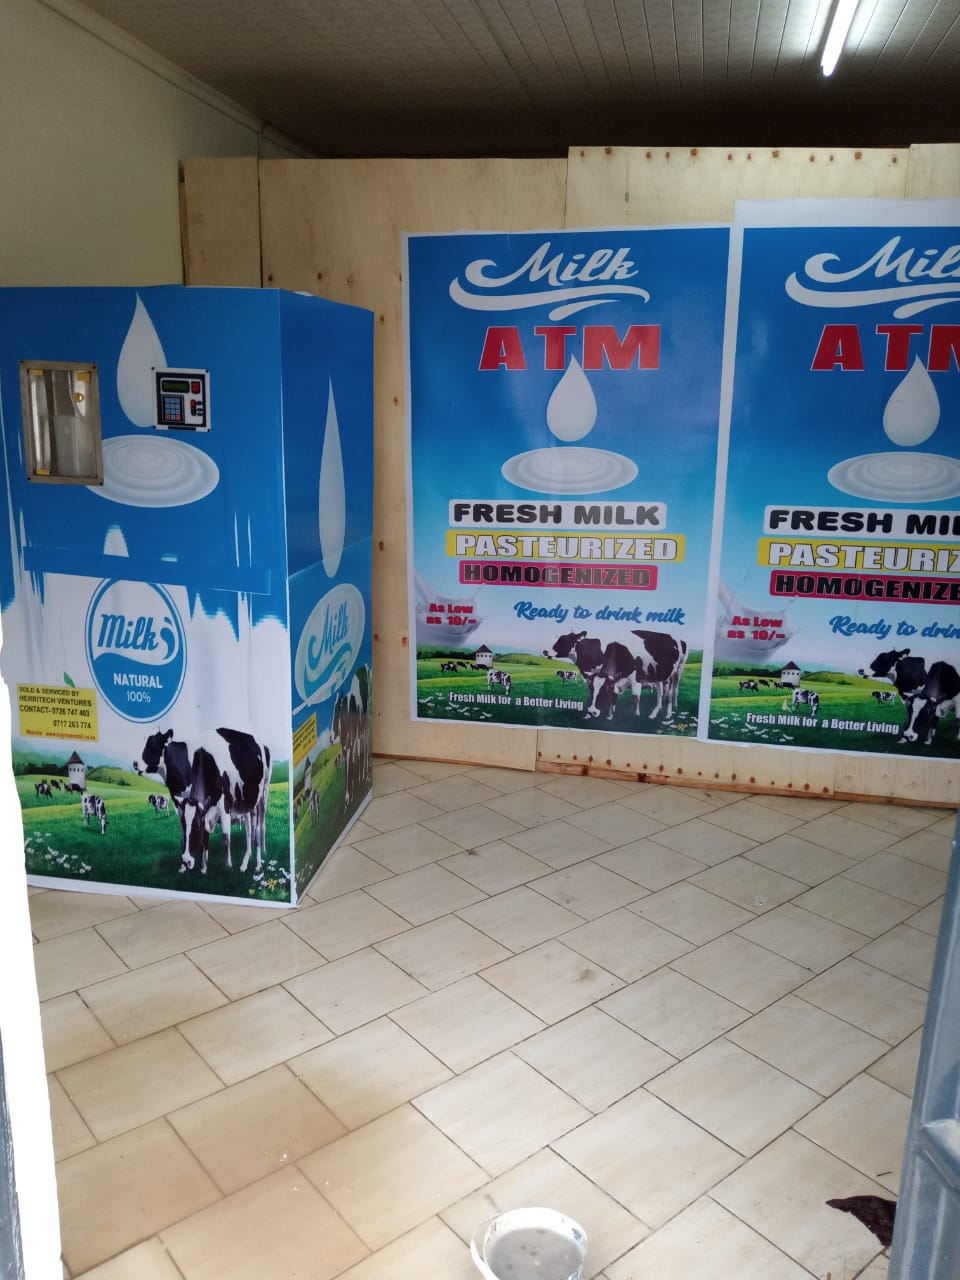 Who are the Best Milk ATM Manufacturers in Kenya?